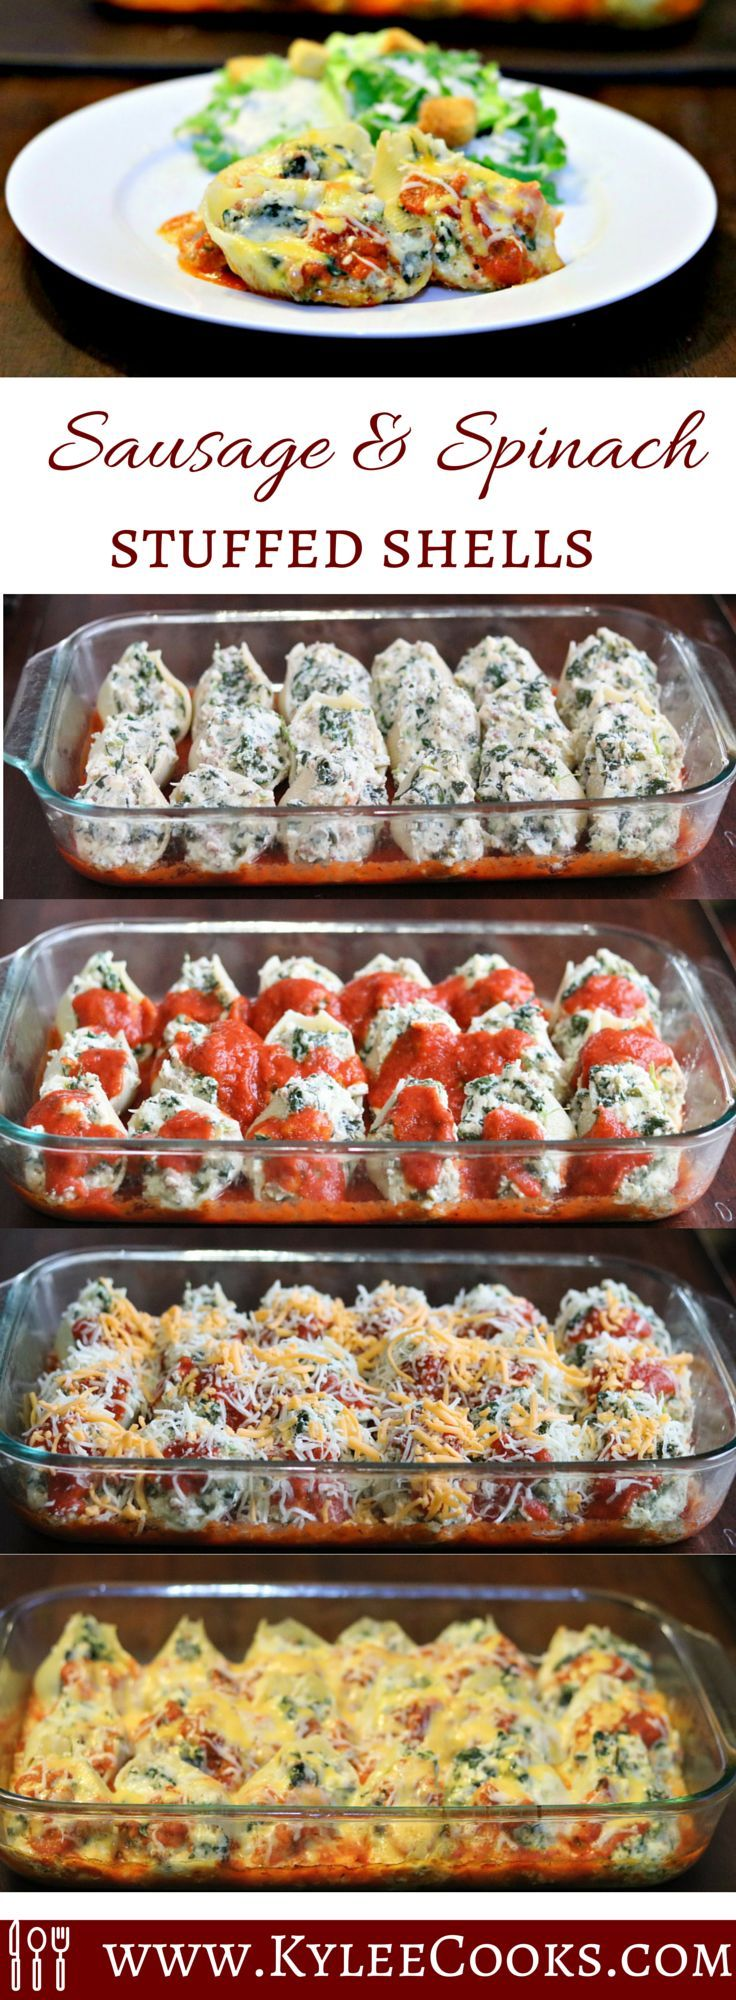 Large pasta shells, stuffed with ricotta, spinach, sausage and ... more cheese, these stuffed shells are a make ahead/freezer cooking DREAM. Packed full of flavor, this is a family friendly, freezer friendly, wallet friendly favorite!